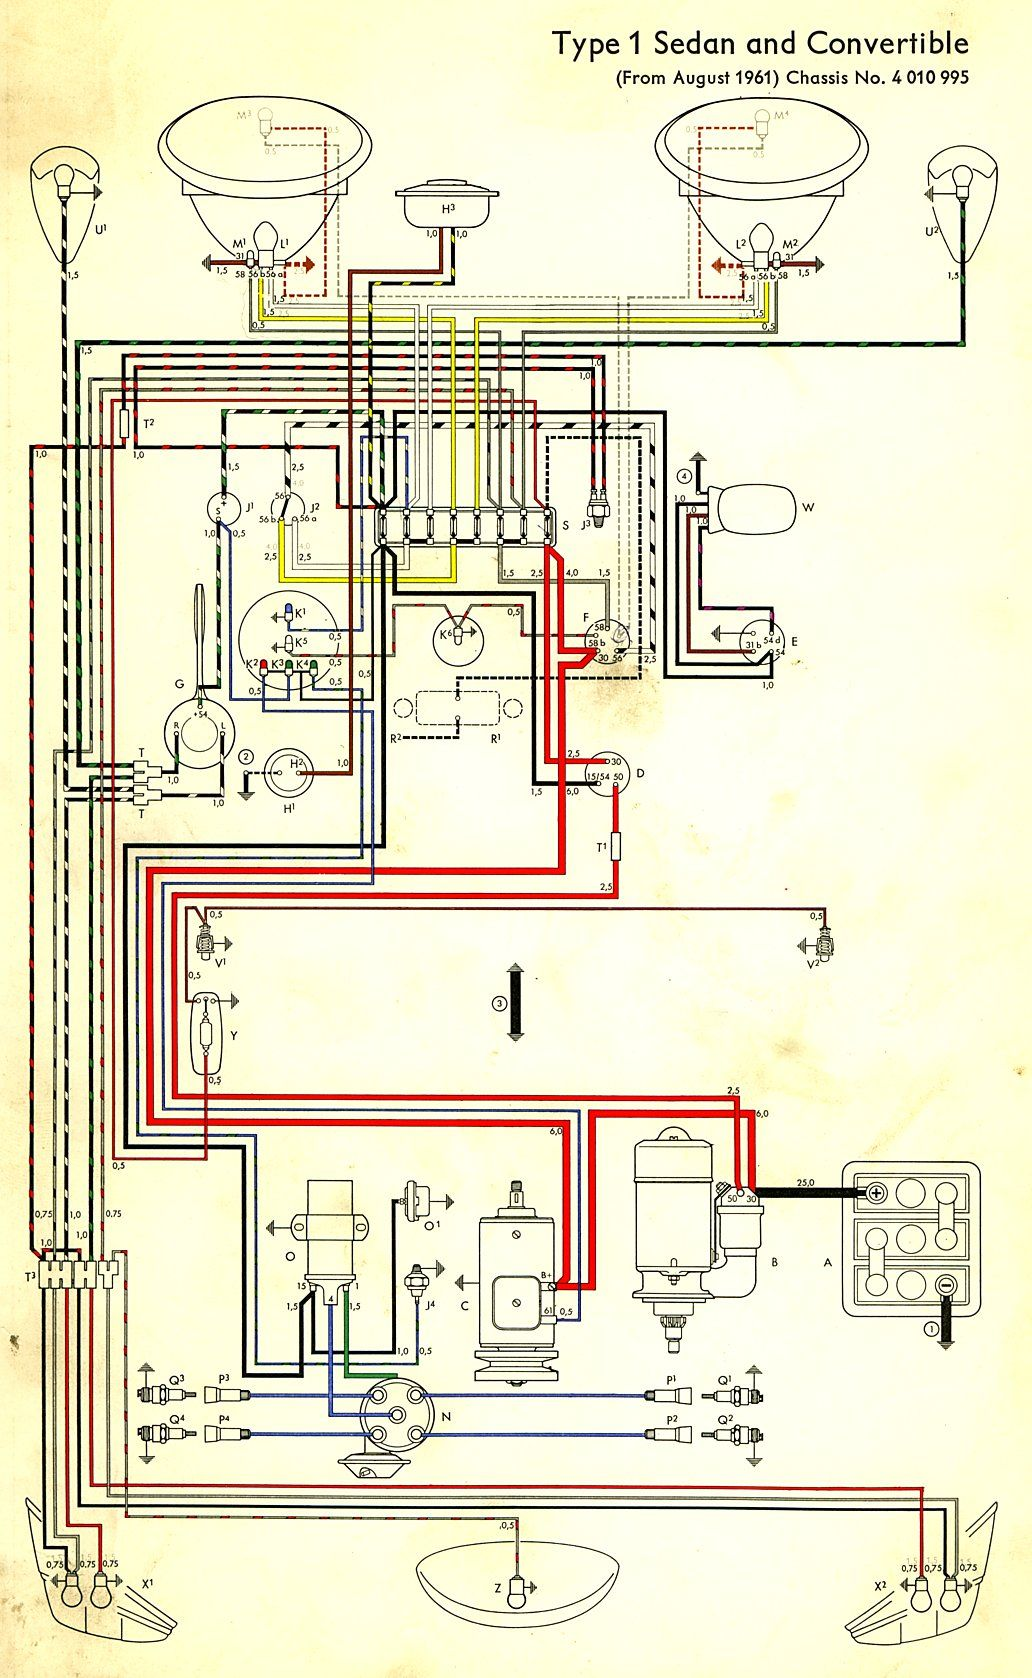 wiring diagram in color 1964 vw bug  beetle  convertible 1969 vw bug wiring diagram VW Beetle Coil Wiring